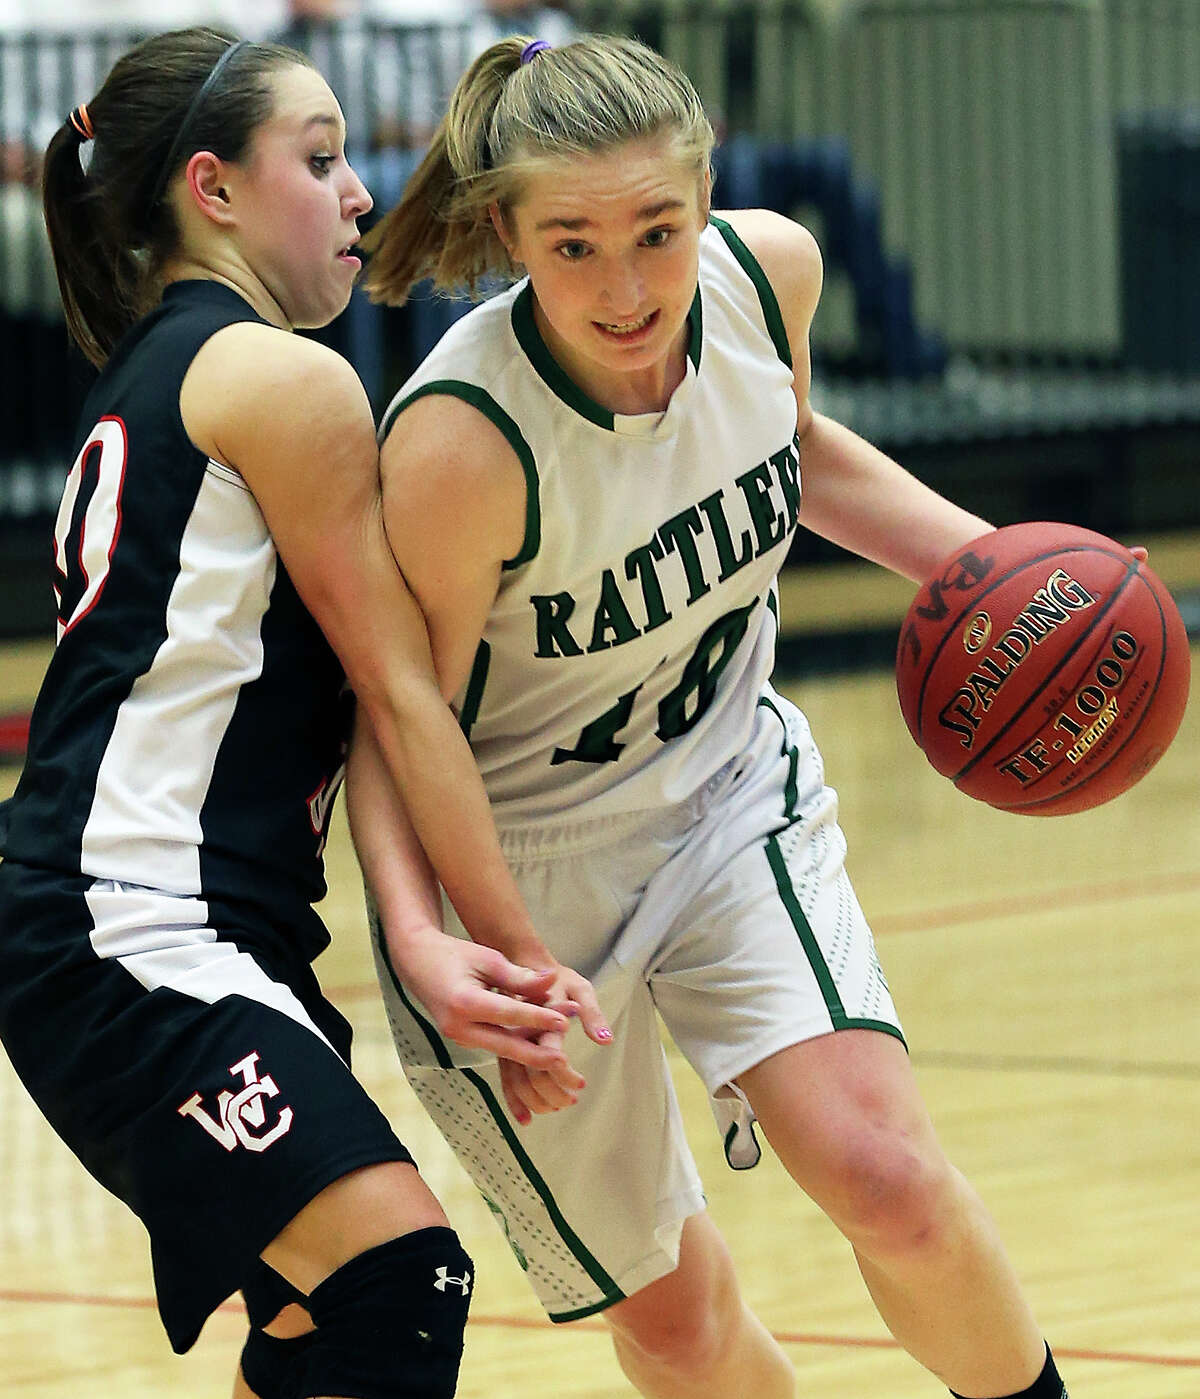 Wendy Knight pushes into the key against the Chargers' Bailee Weinheimer as the Reagan girls play Churchill at Littleton Gym on January 15, 2013.